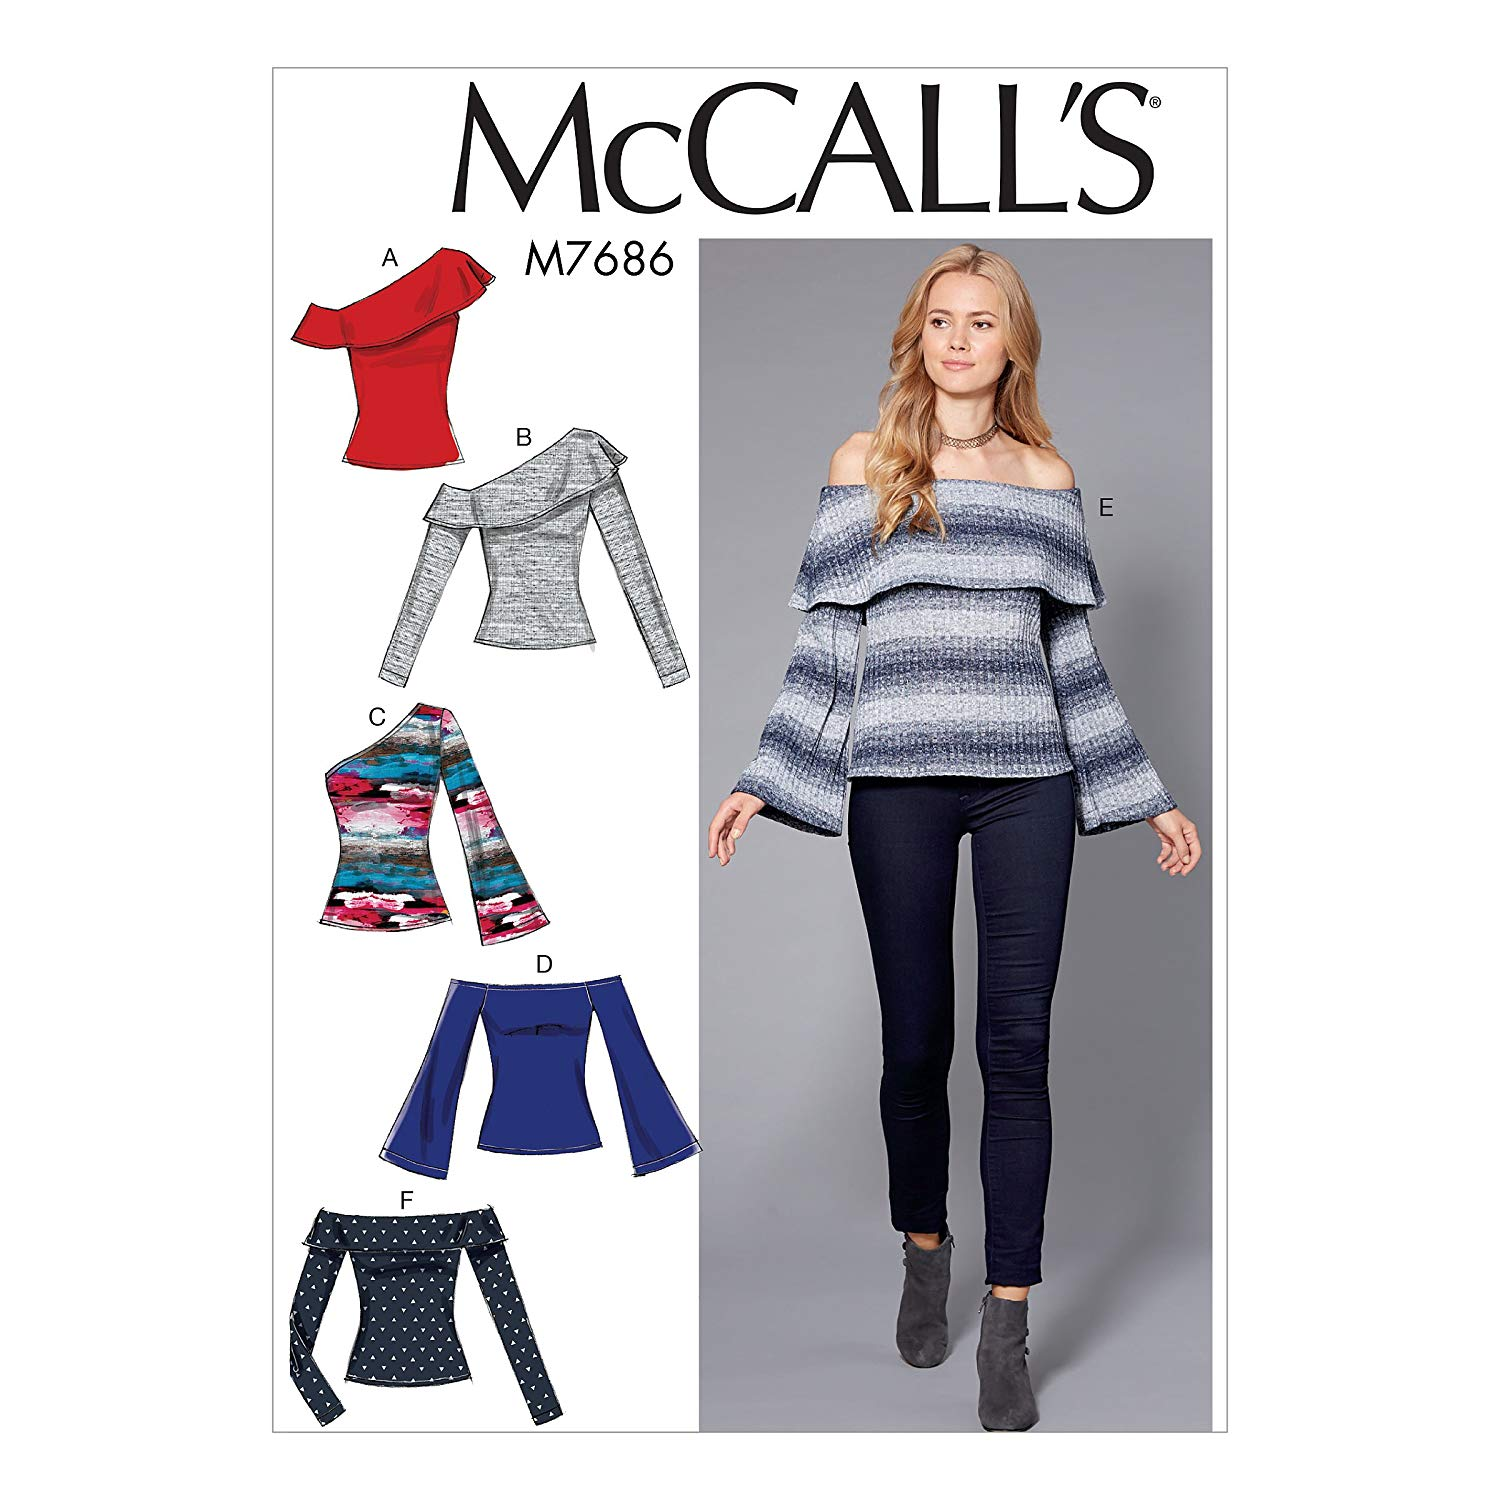 XXS-XS-S-M-L-XL-XXL Simplicity Creative Patterns 1317 Misses Pullover Knit Top Sewing Patterns Size A